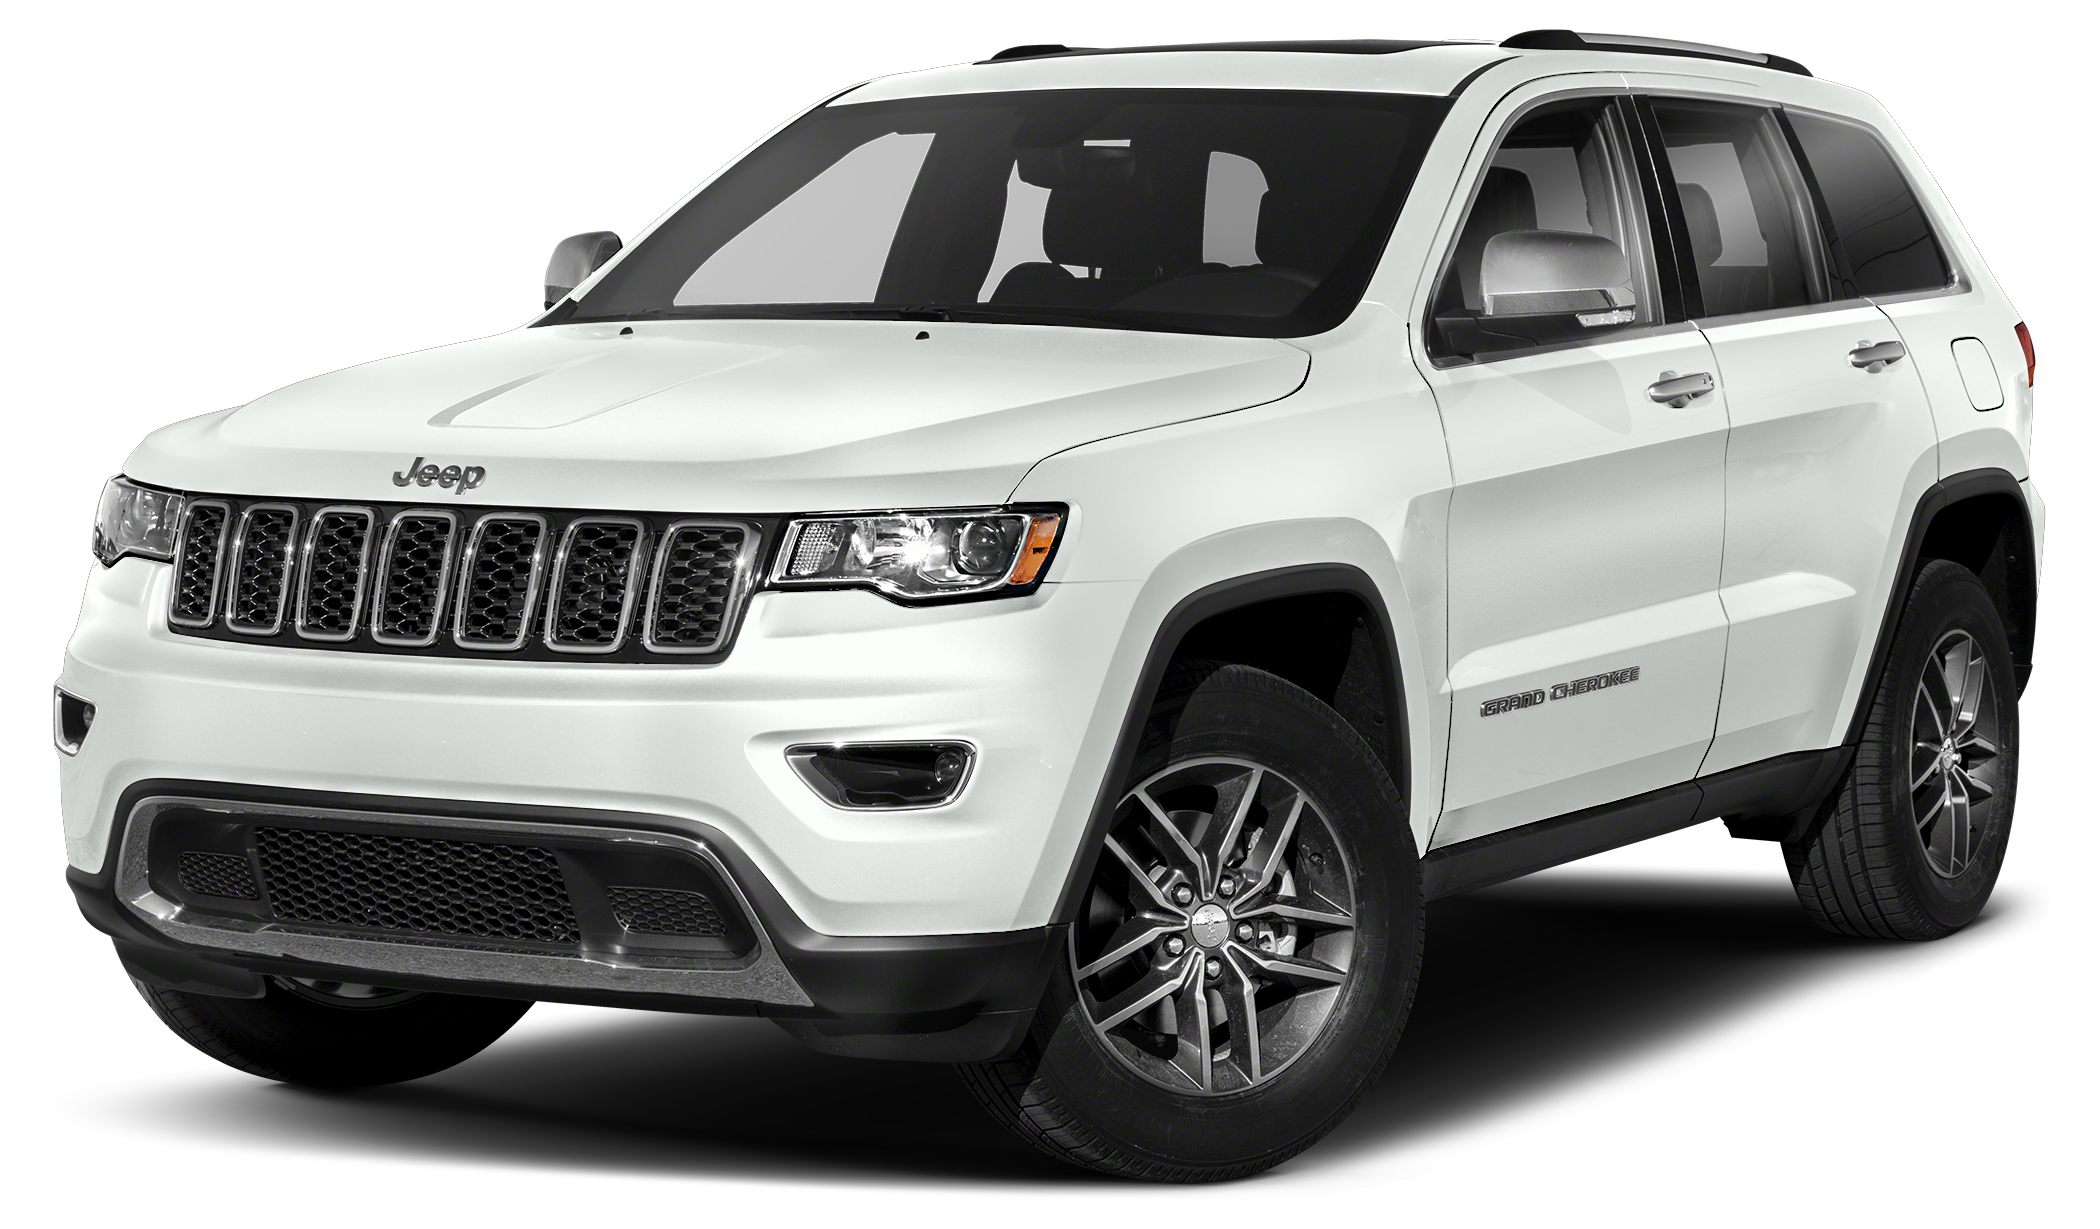 2018 Jeep Grand Cherokee Limited This 2018 Jeep Grand Cherokee 4dr Limited 4x2 features a 36L V6